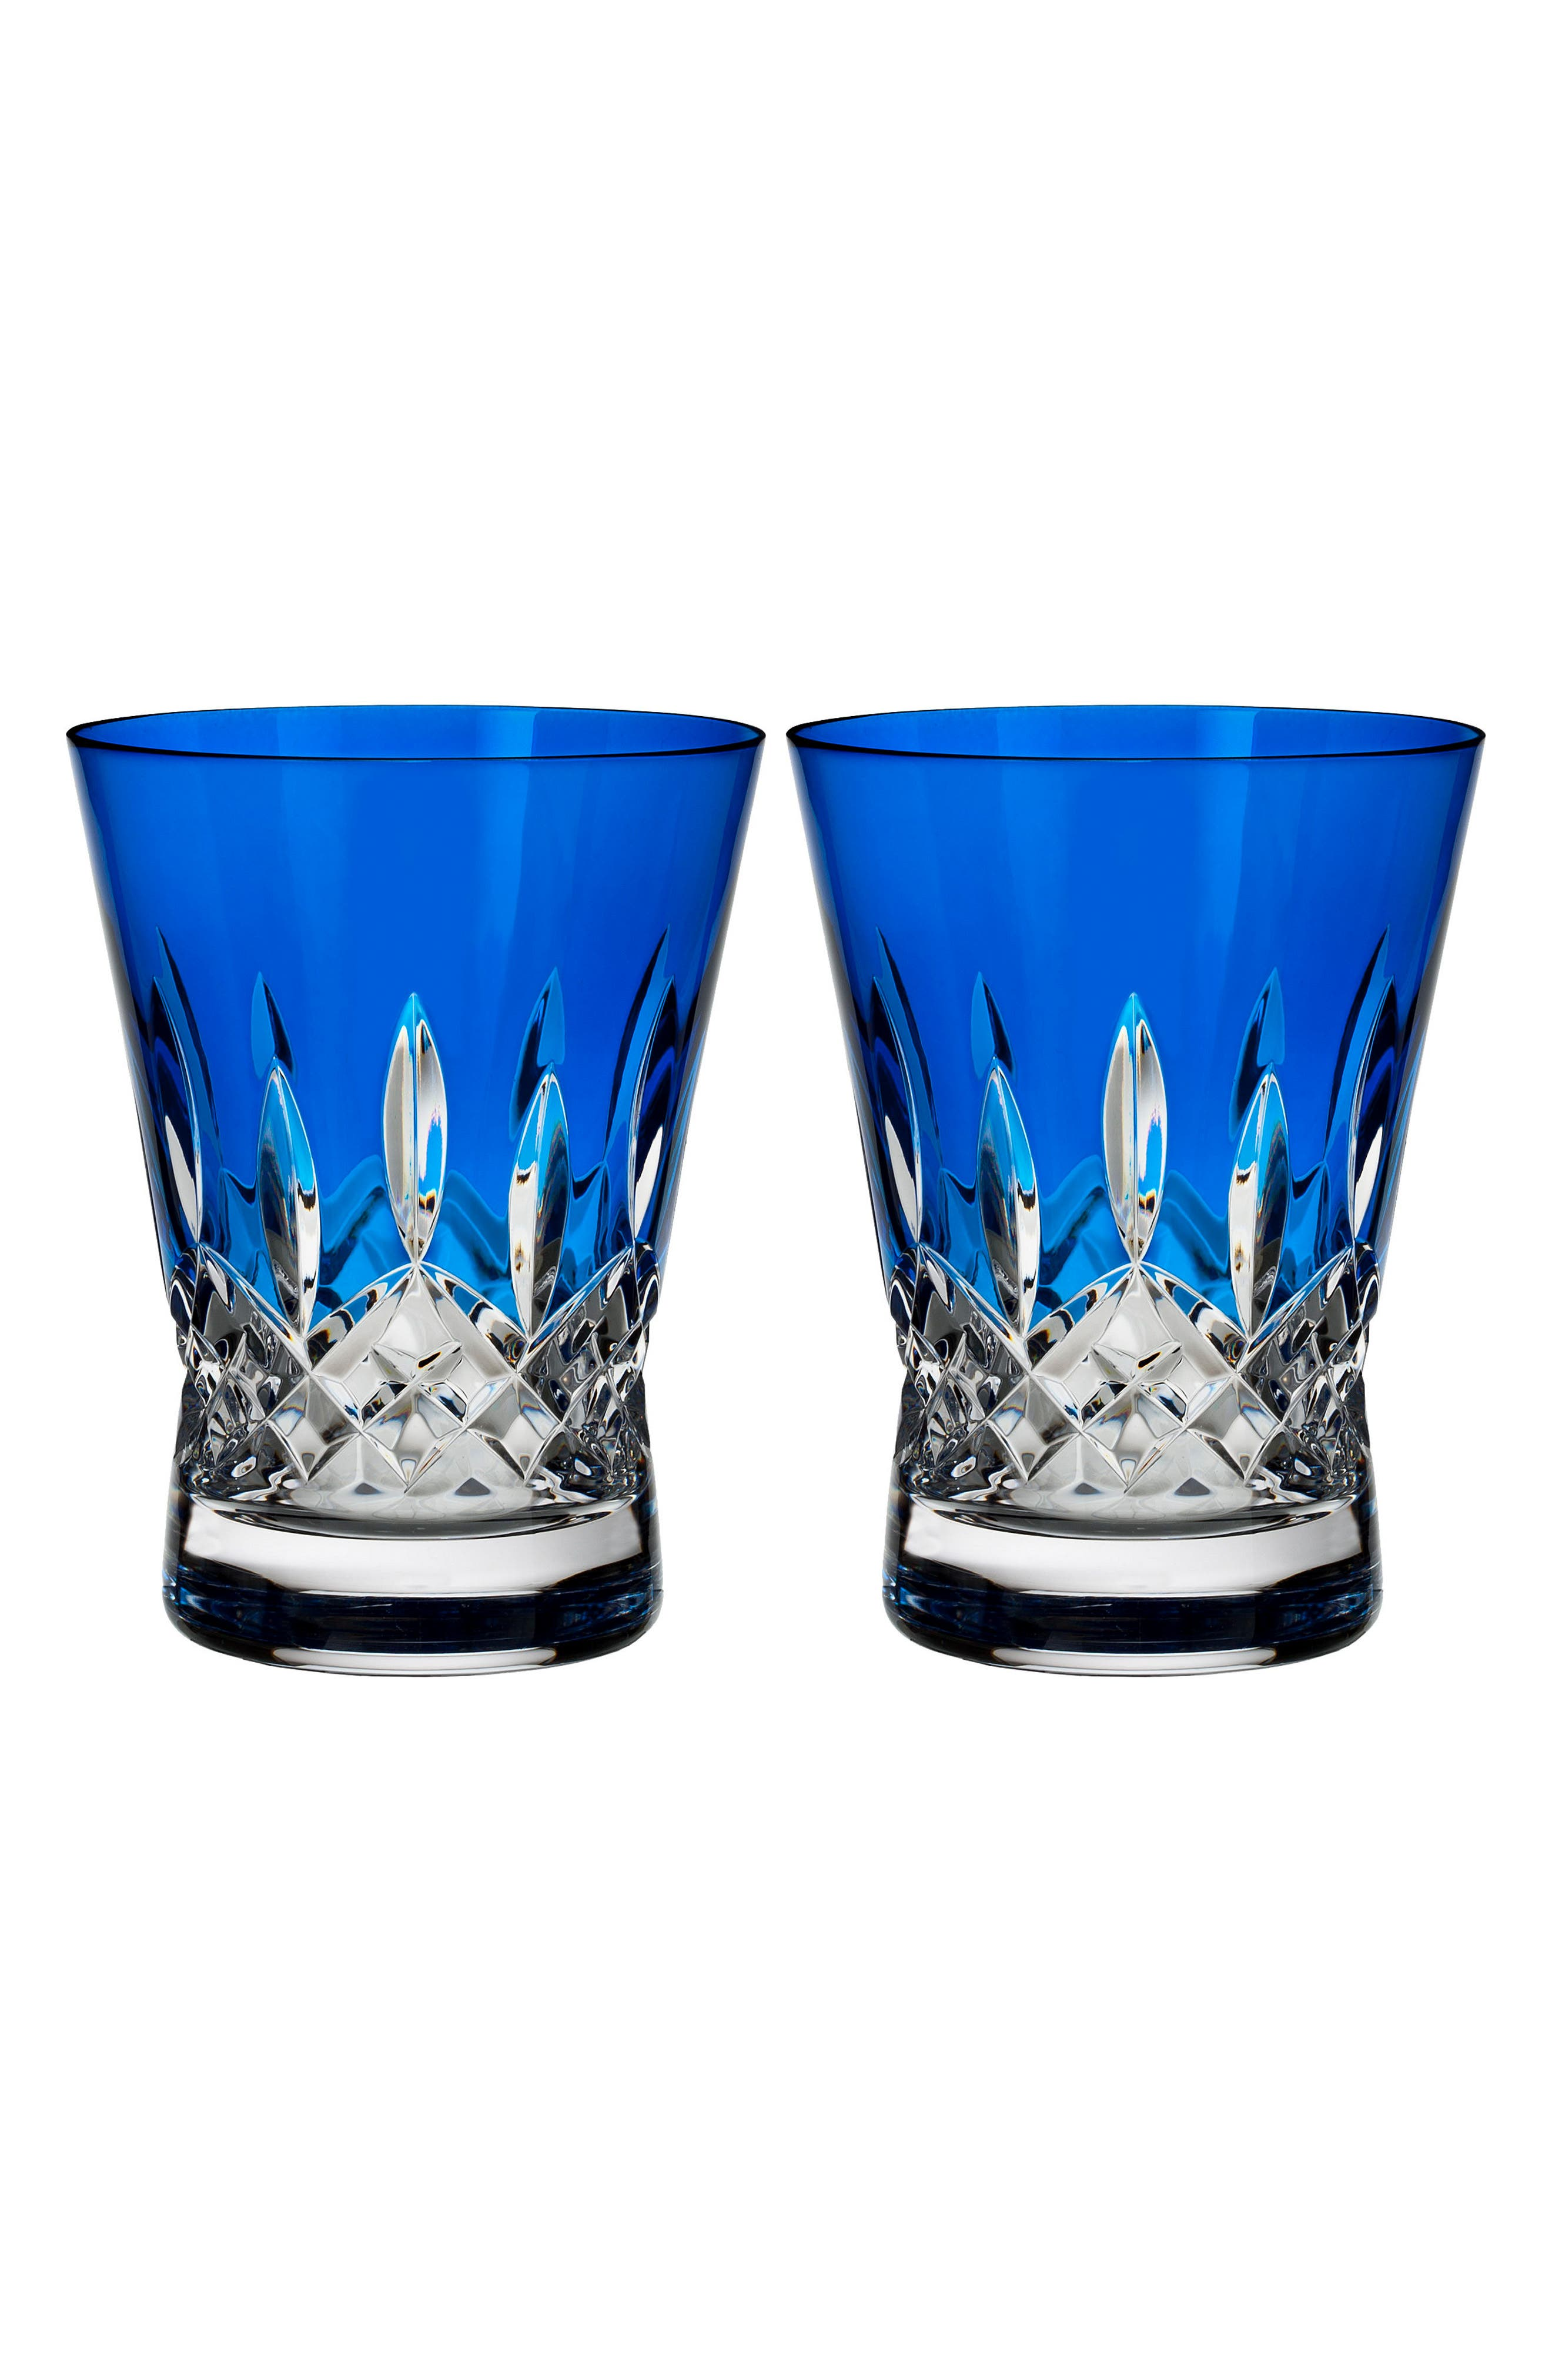 Main Image - Waterford Lismore Pops Set of 2 Cobalt Lead Crystal Double Old Fashioned Glasses